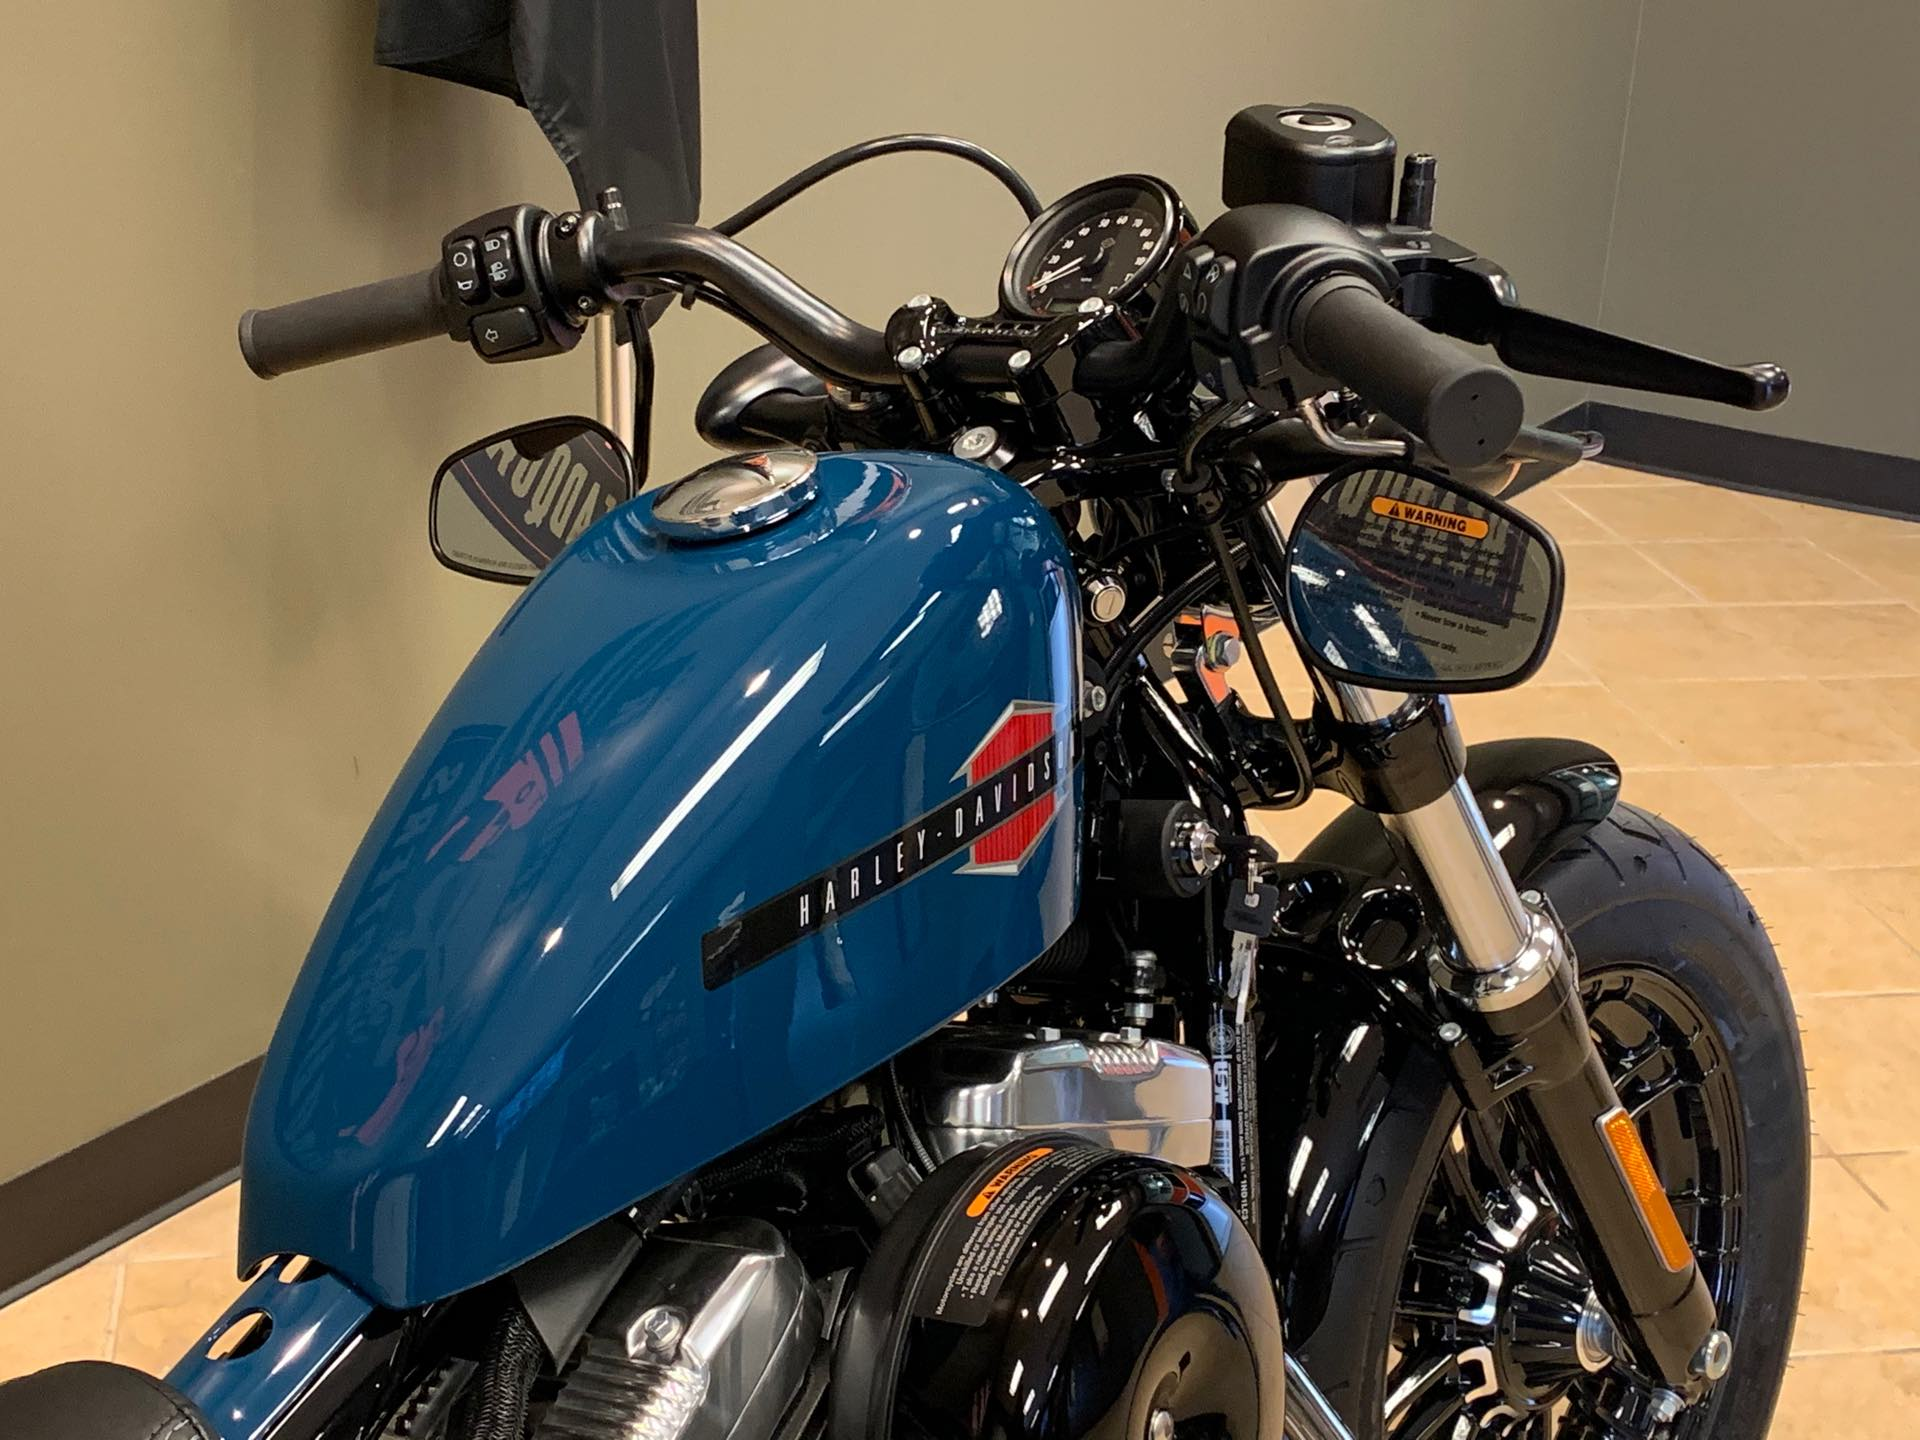 2021 Harley-Davidson Street XL 1200X Forty-Eight at Loess Hills Harley-Davidson